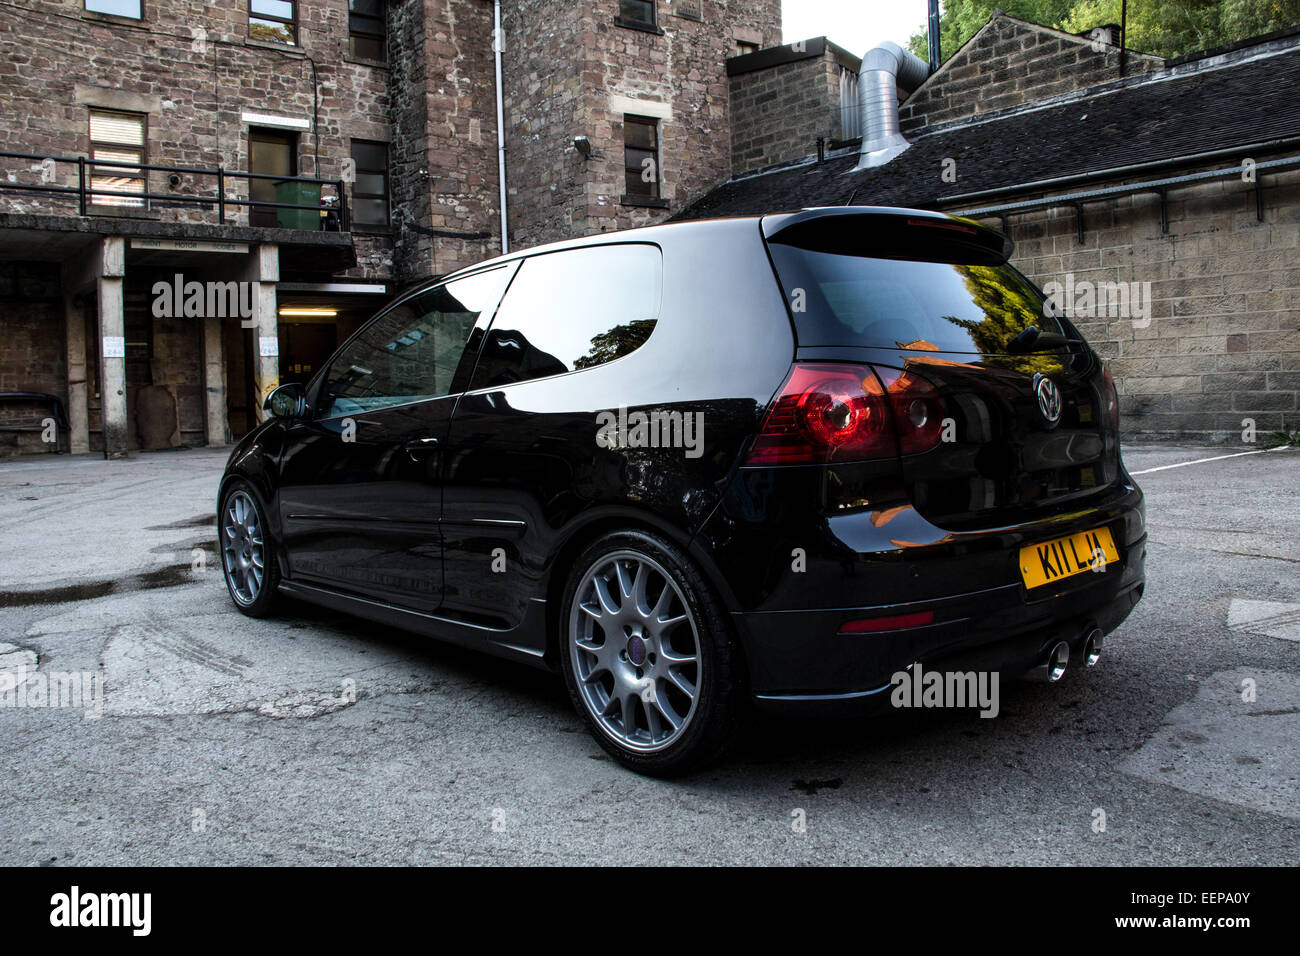 Super Clean and Shiny Volkswagen VW Golf GTi - Stock Image